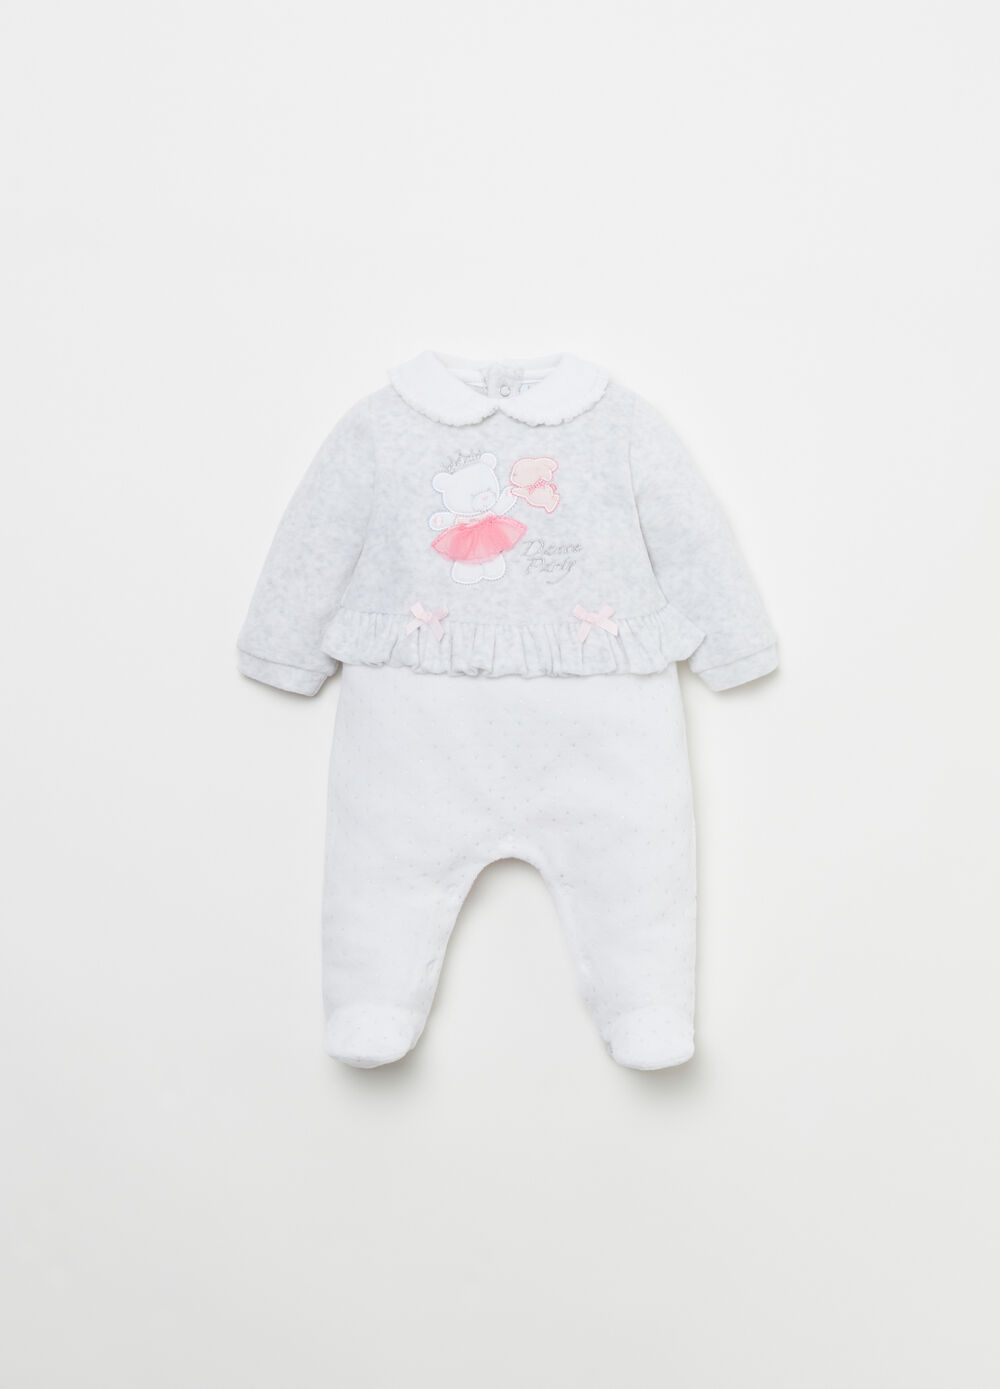 Onesie with animal patch and glitter polka dots